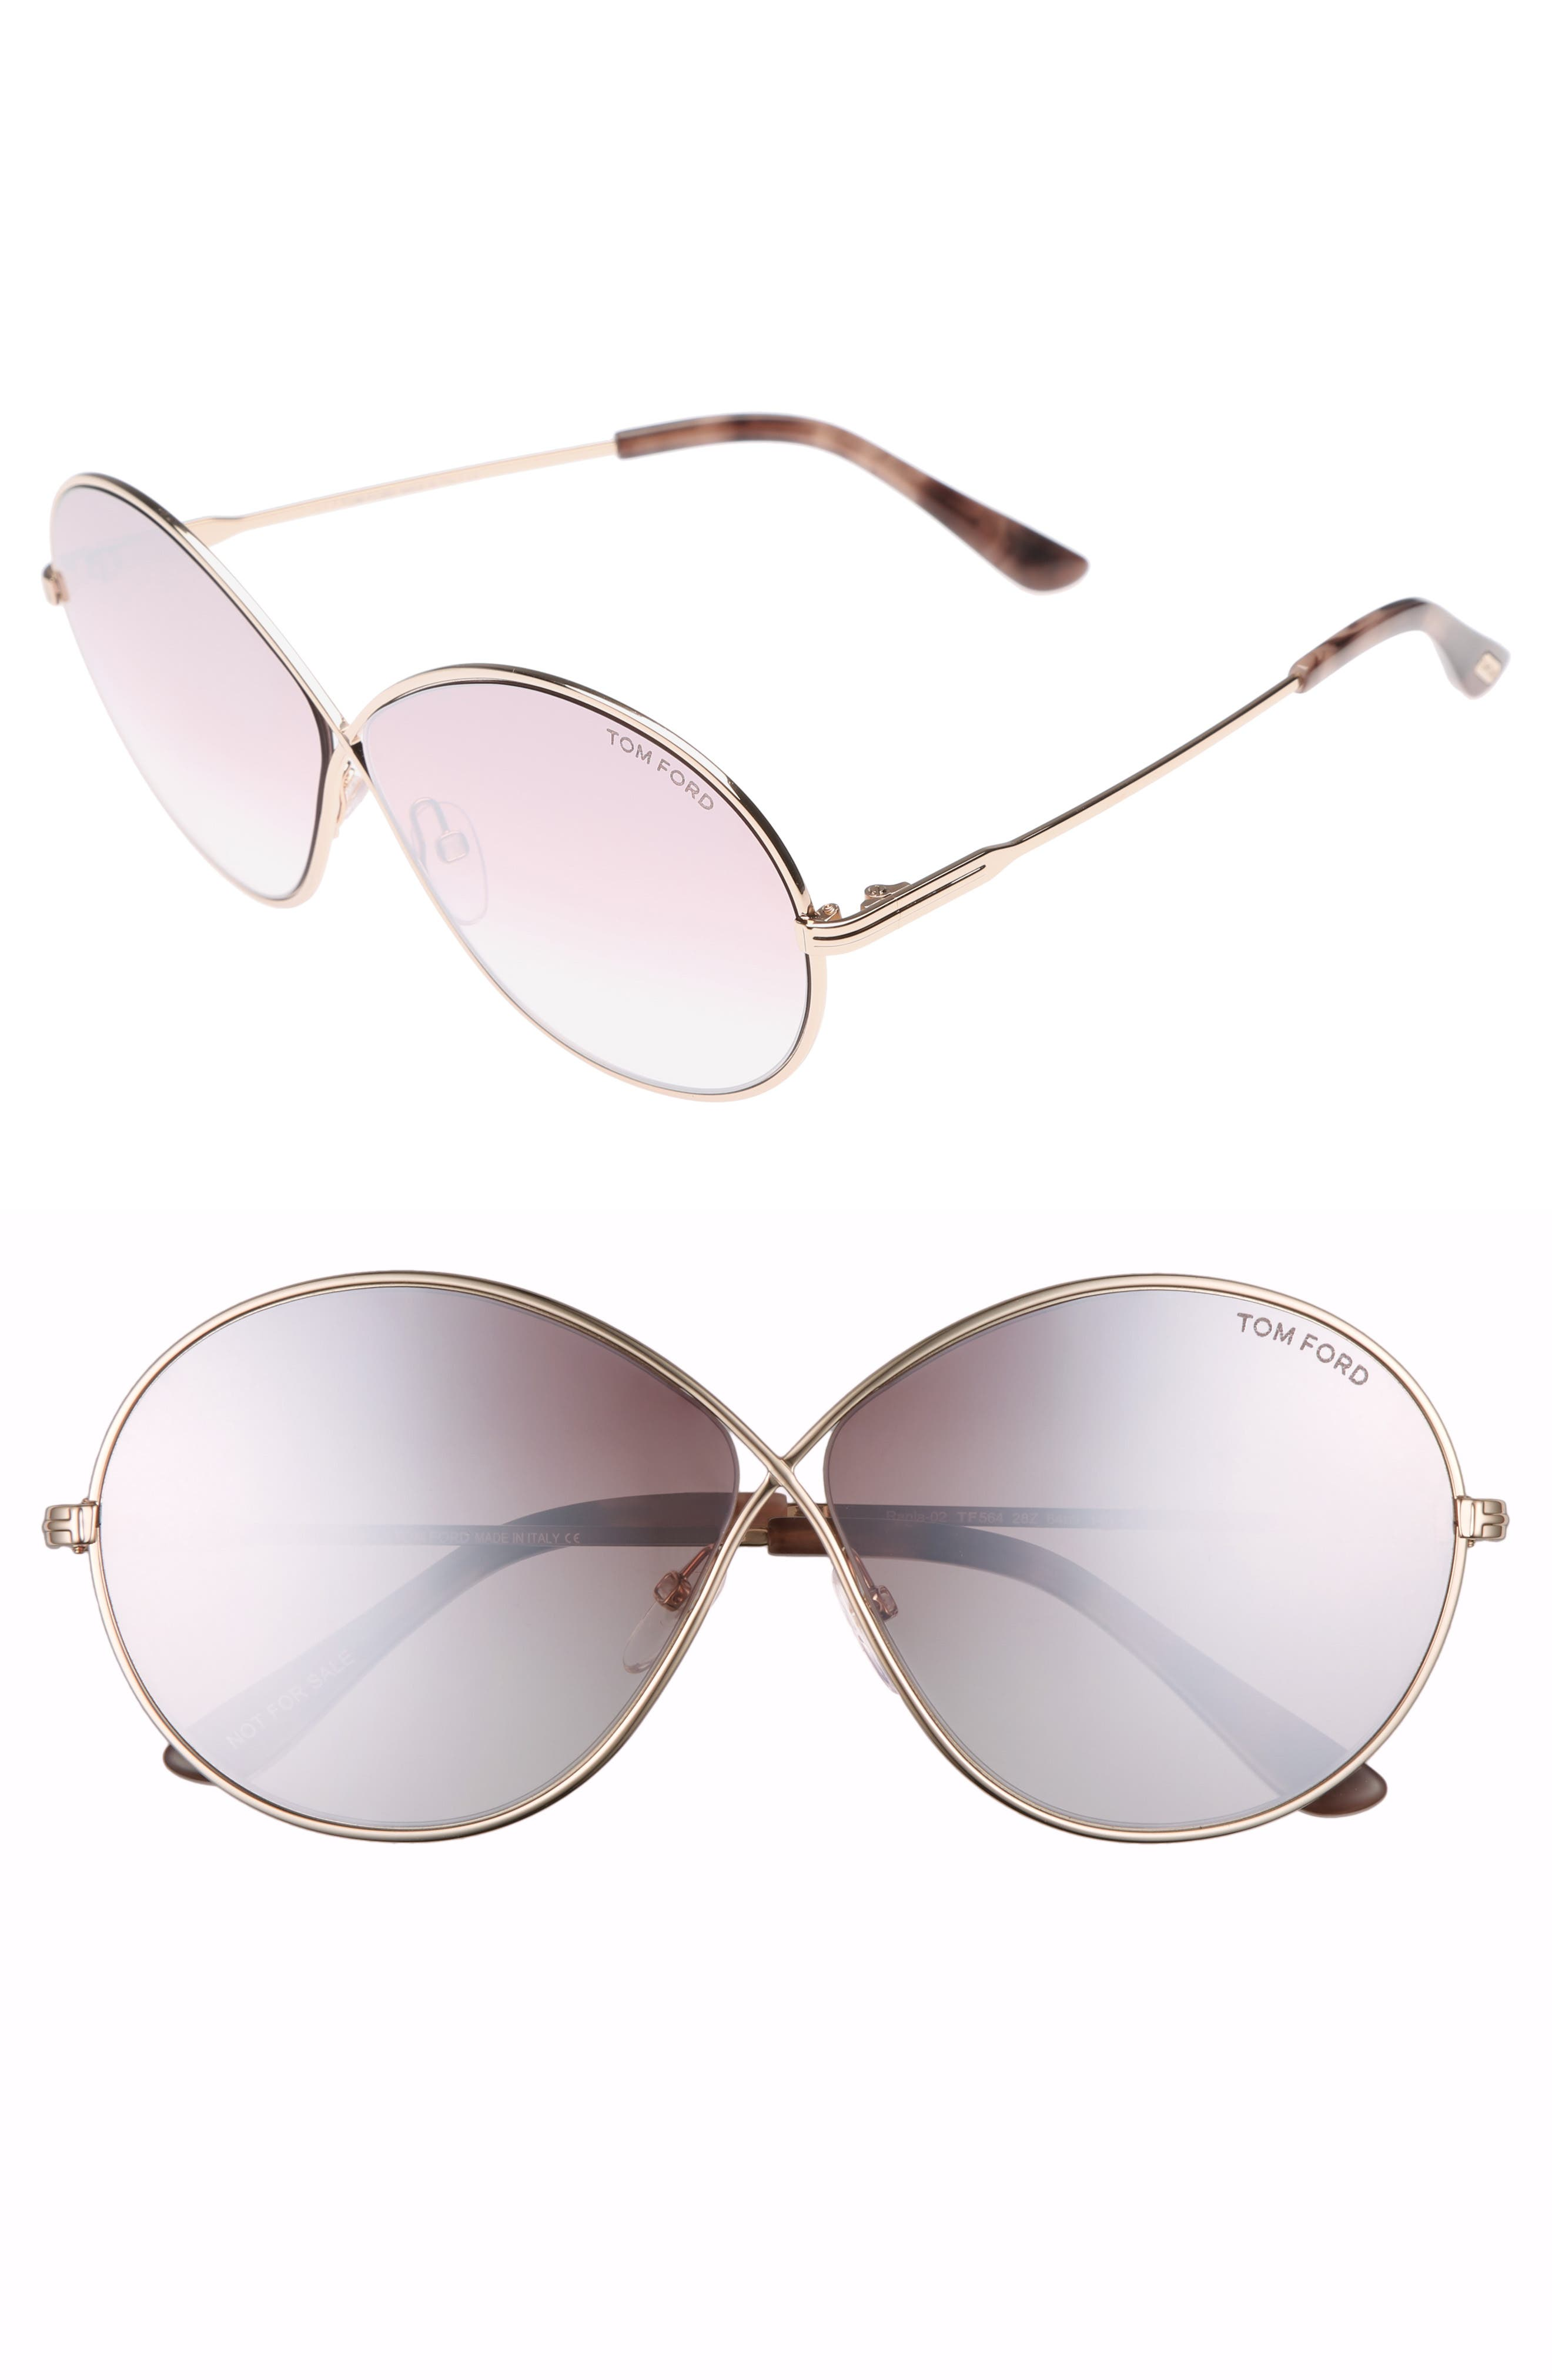 Main Image - Tom Ford Rania 64mm Oversize Round Sunglasses